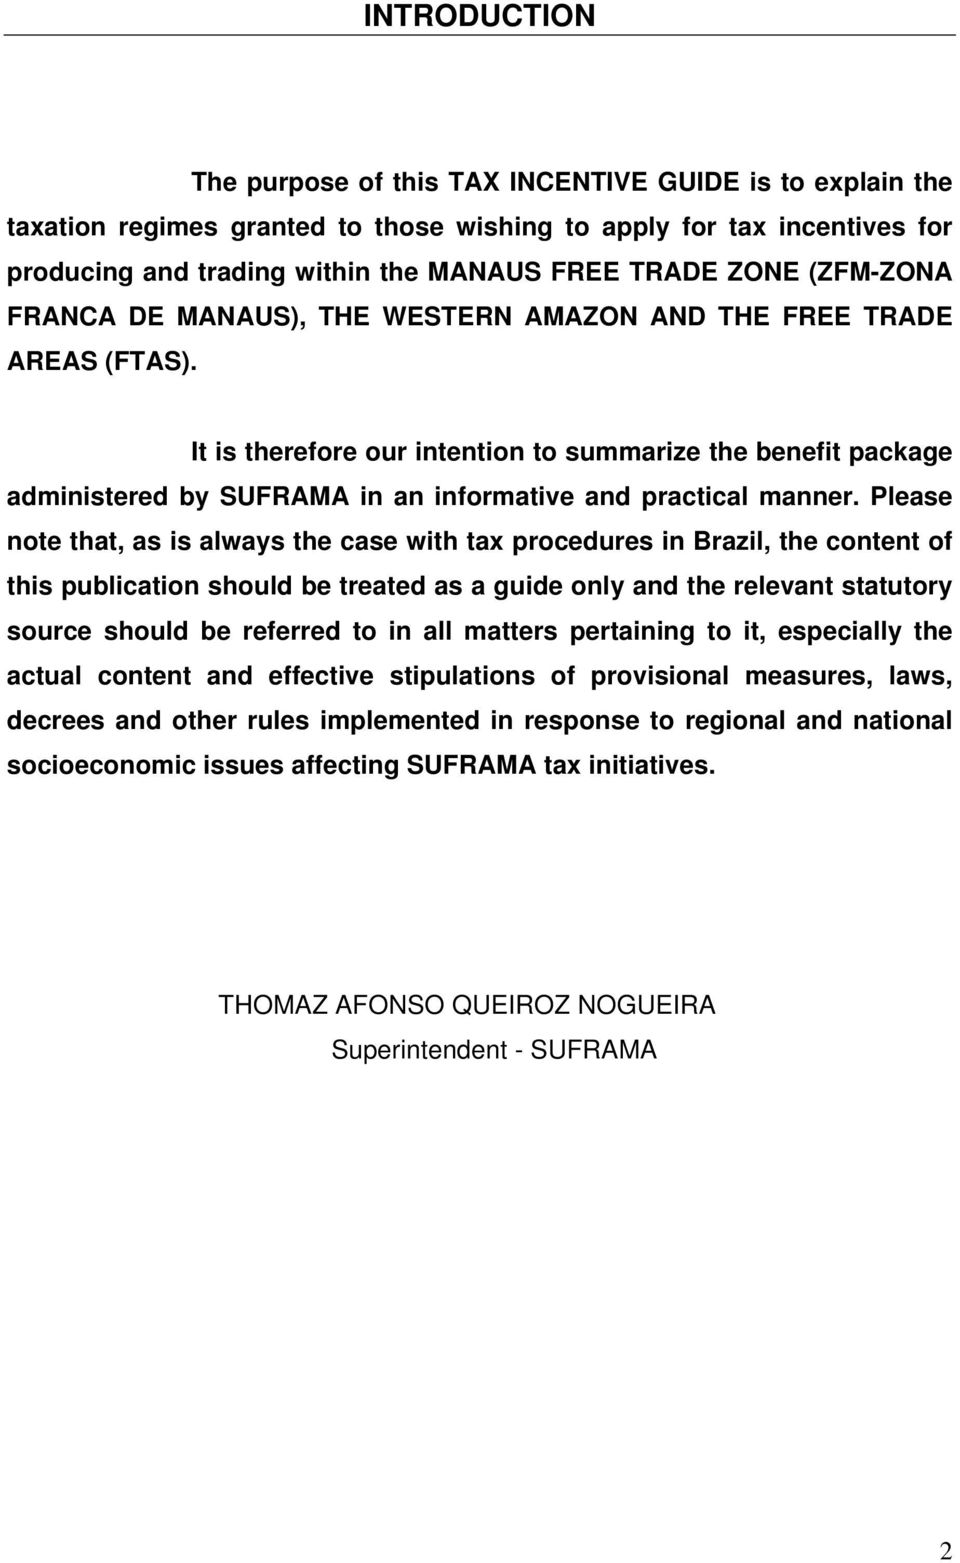 It is therefore our intention to summarize the benefit package administered by SUFRAMA in an informative and practical manner.